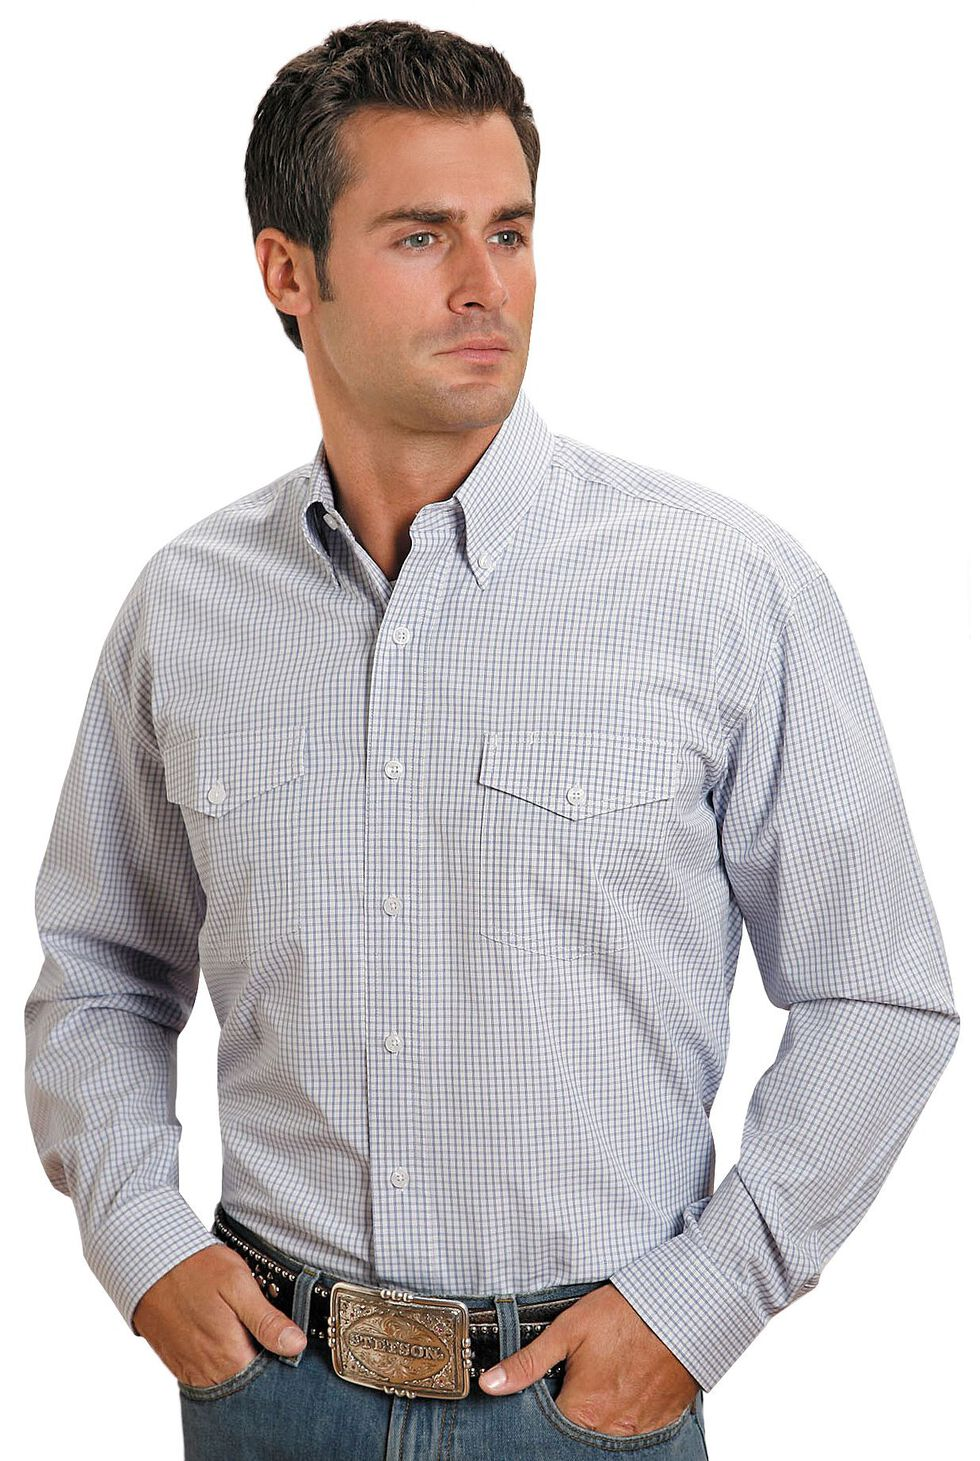 Stetson Plaid Check Button Shirt, Blue, hi-res